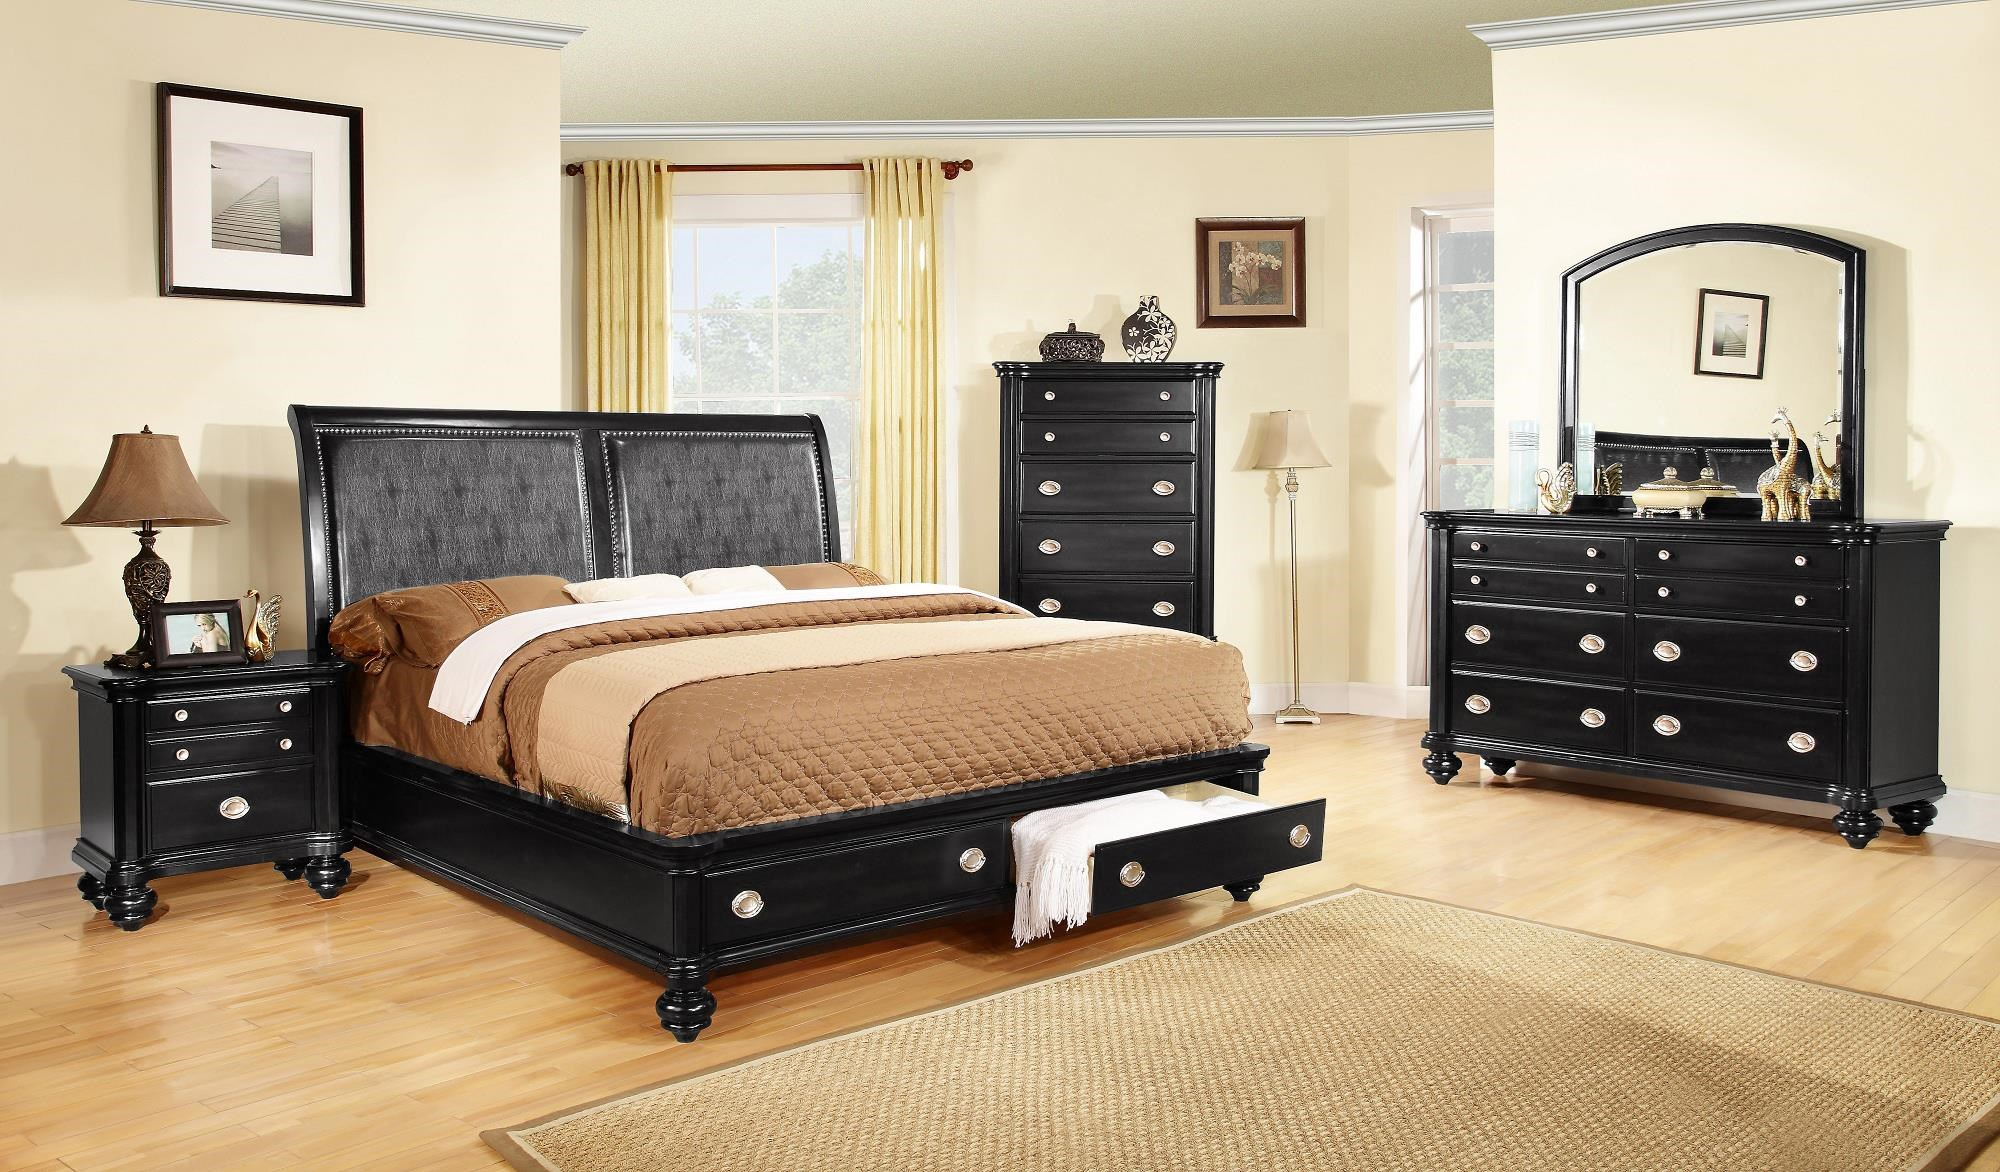 Lifestyle C2175 Queen 6 Piece Bedroom Group   Item Number  C2175 Queen Group. Lifestyle C2175 Queen 6 Piece Bedroom Group   Royal Furniture